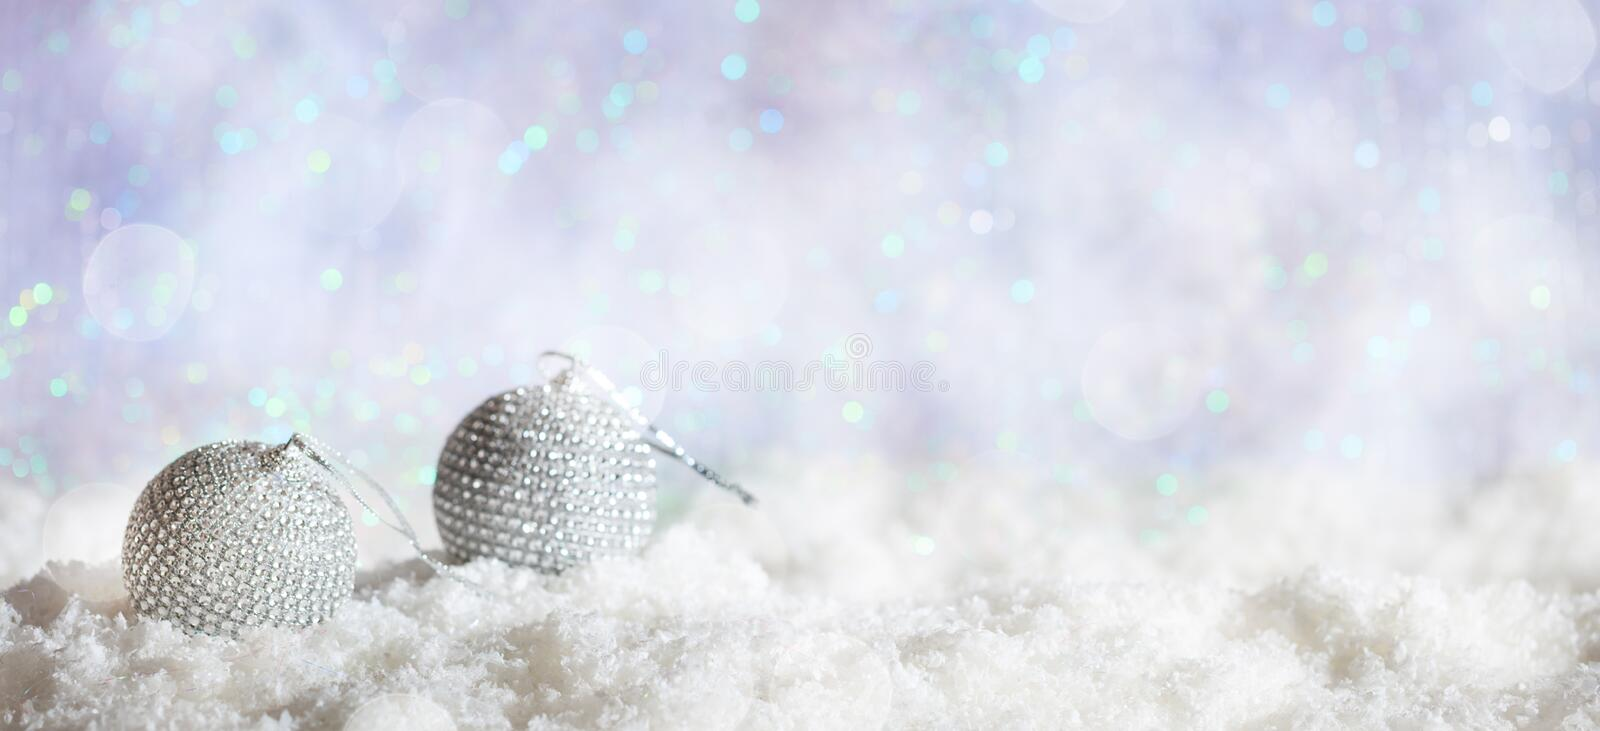 Christmas balls on Christmas snowy bokeh background. Christmas balls on abstract cold winter background with snow and defocused lights stock photography